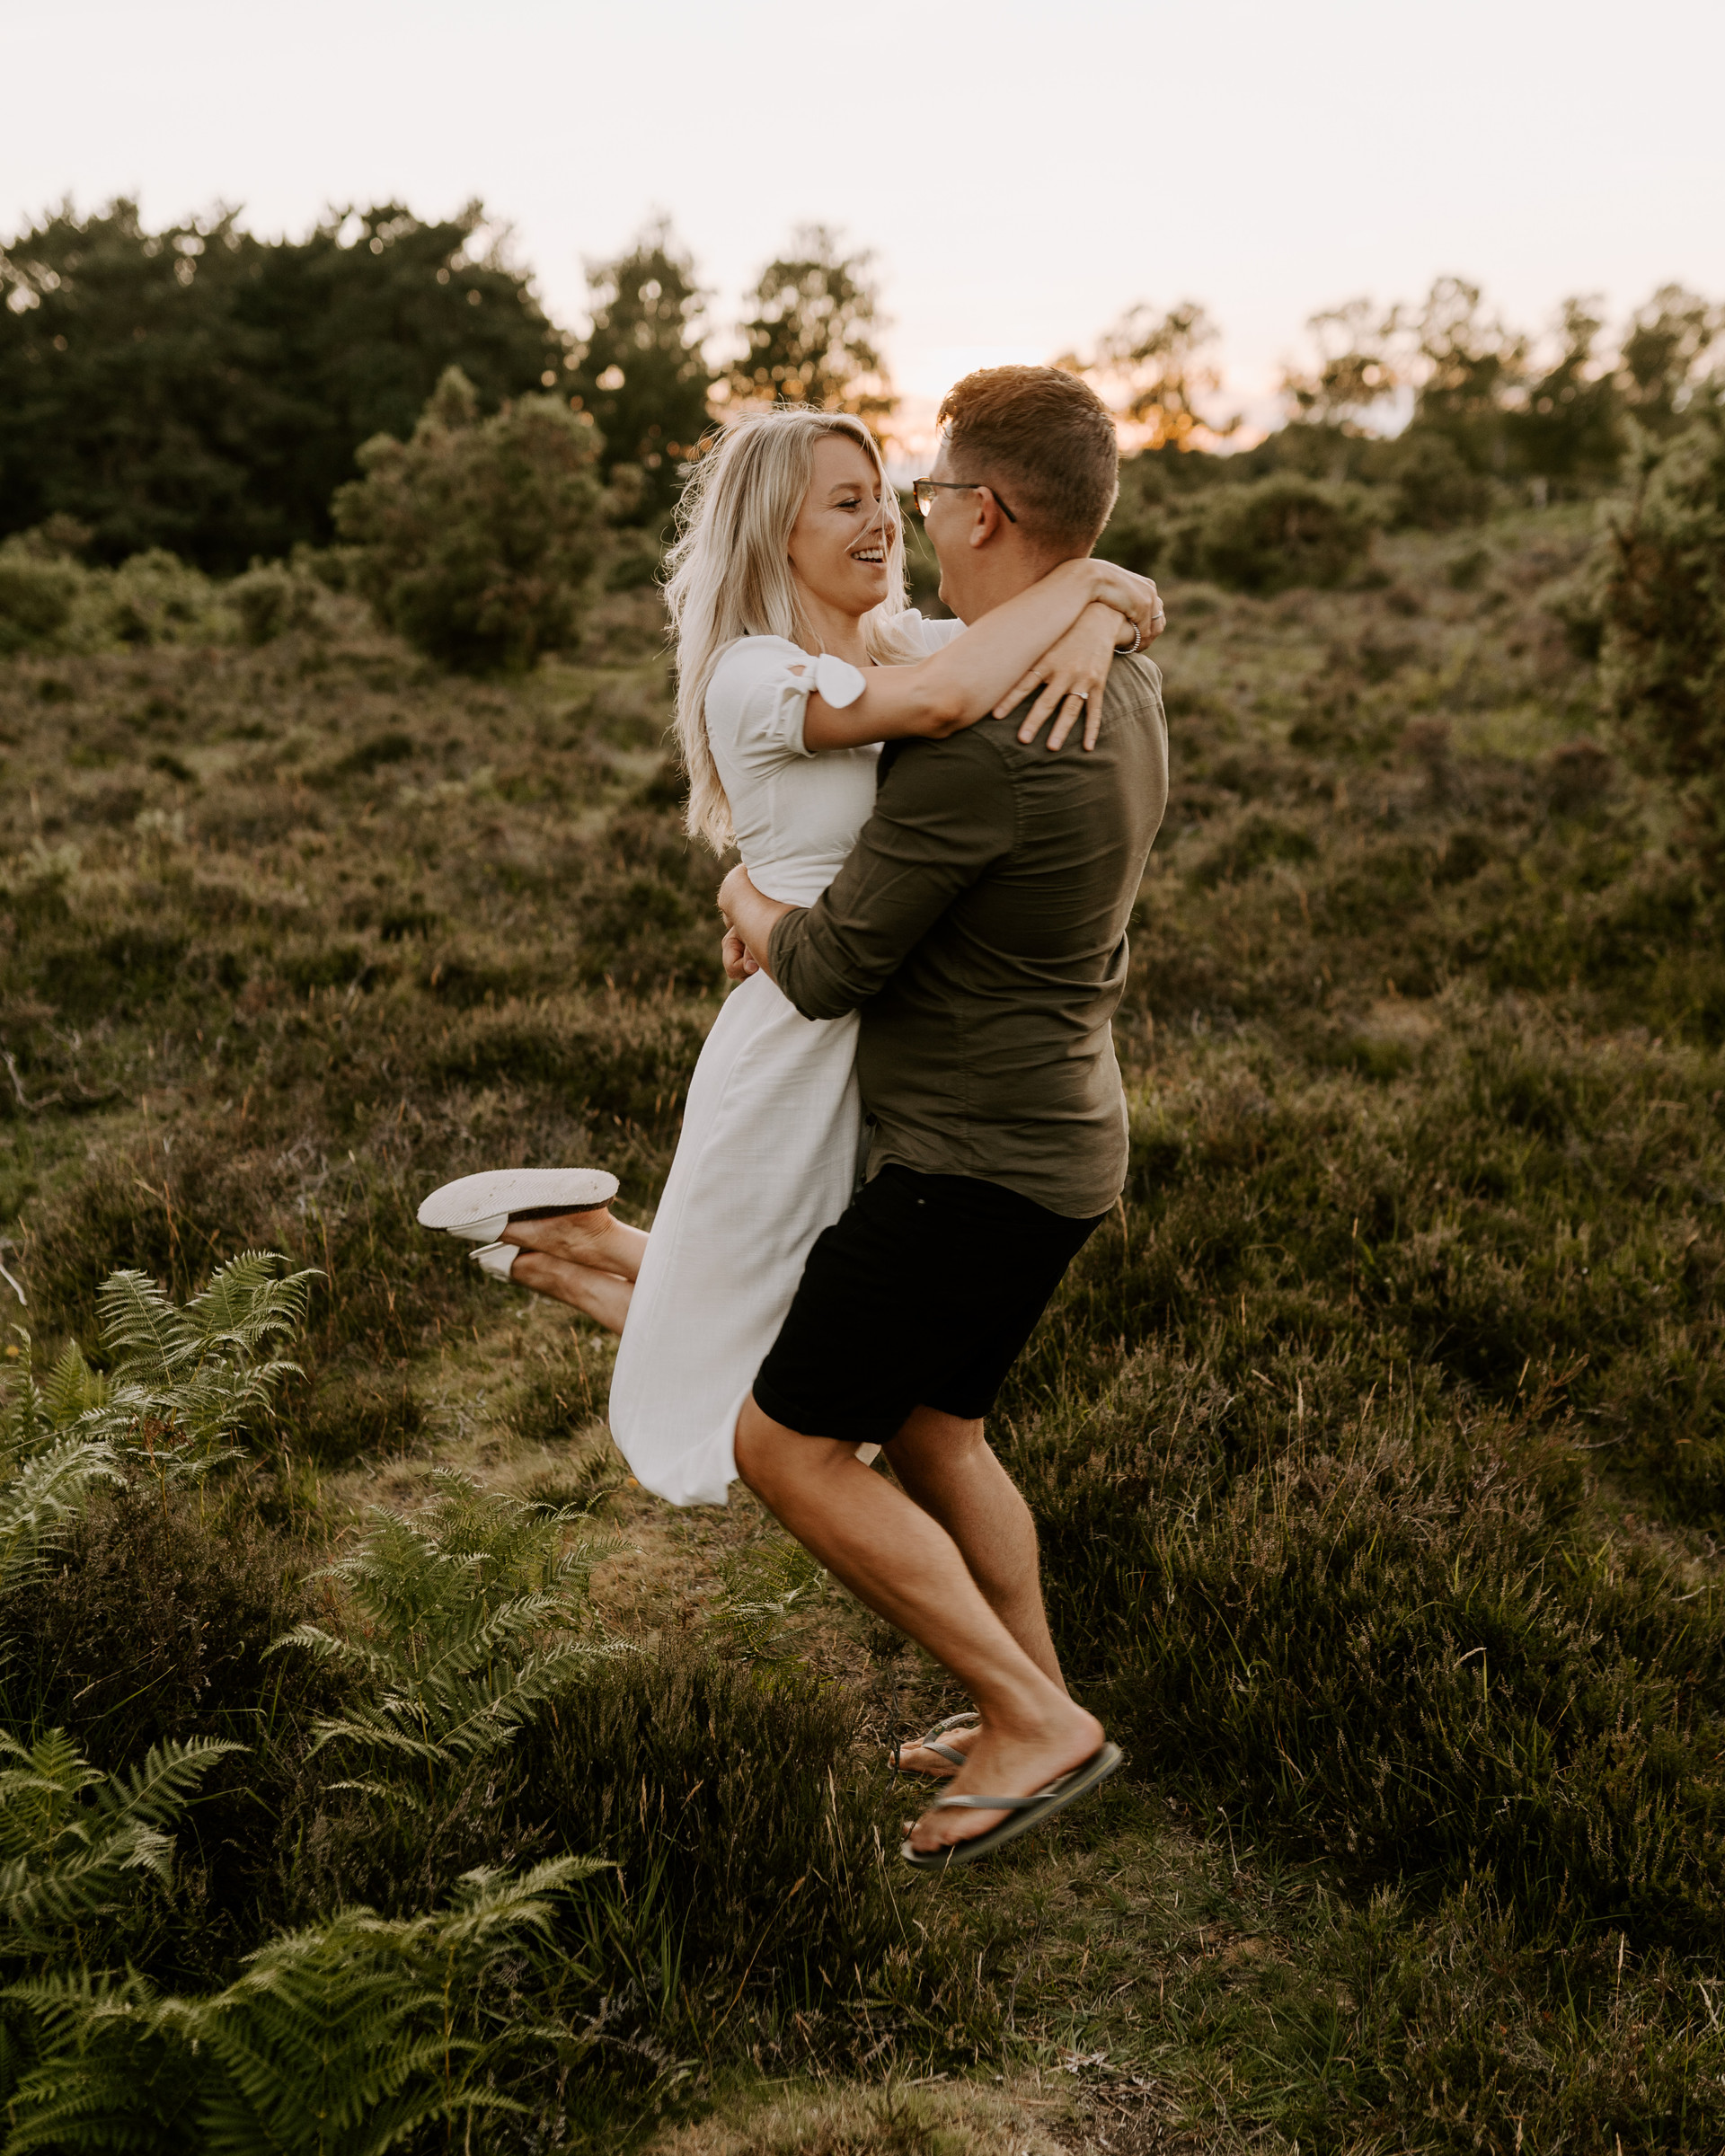 Sian & Mike | Couple Session-144.jpg